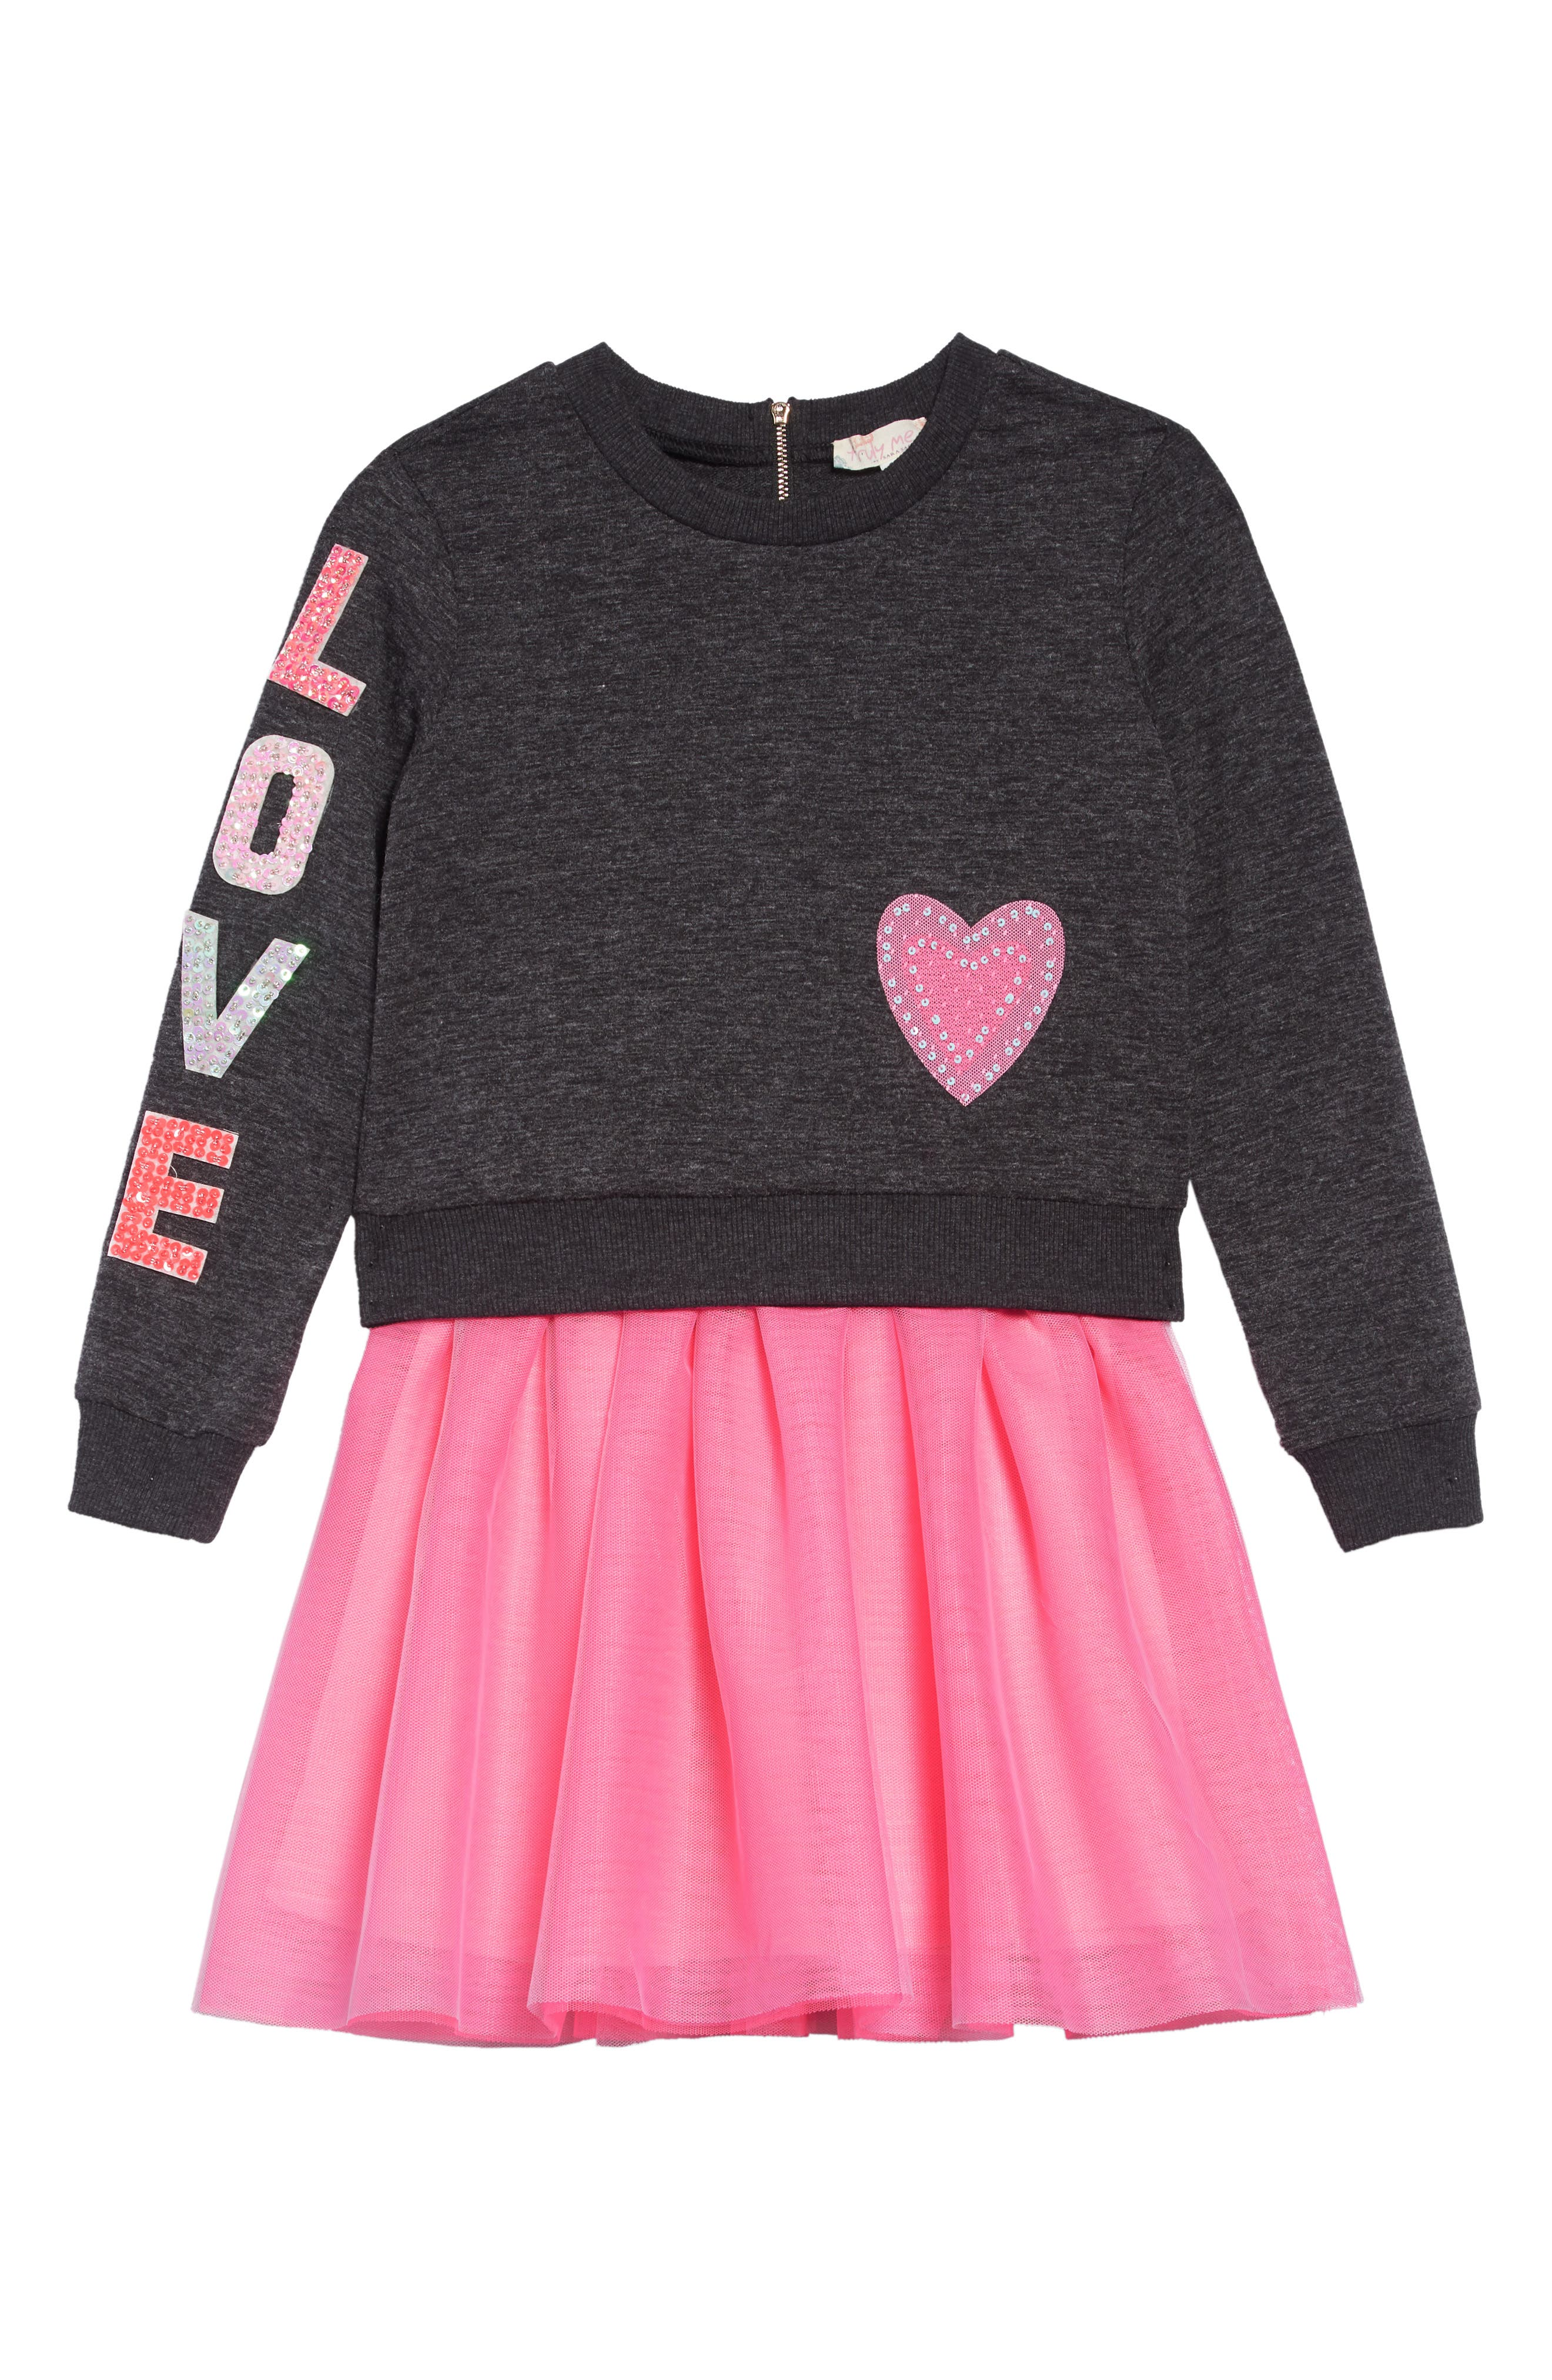 TRULY ME Love Dress Set, Main, color, GREY PINK